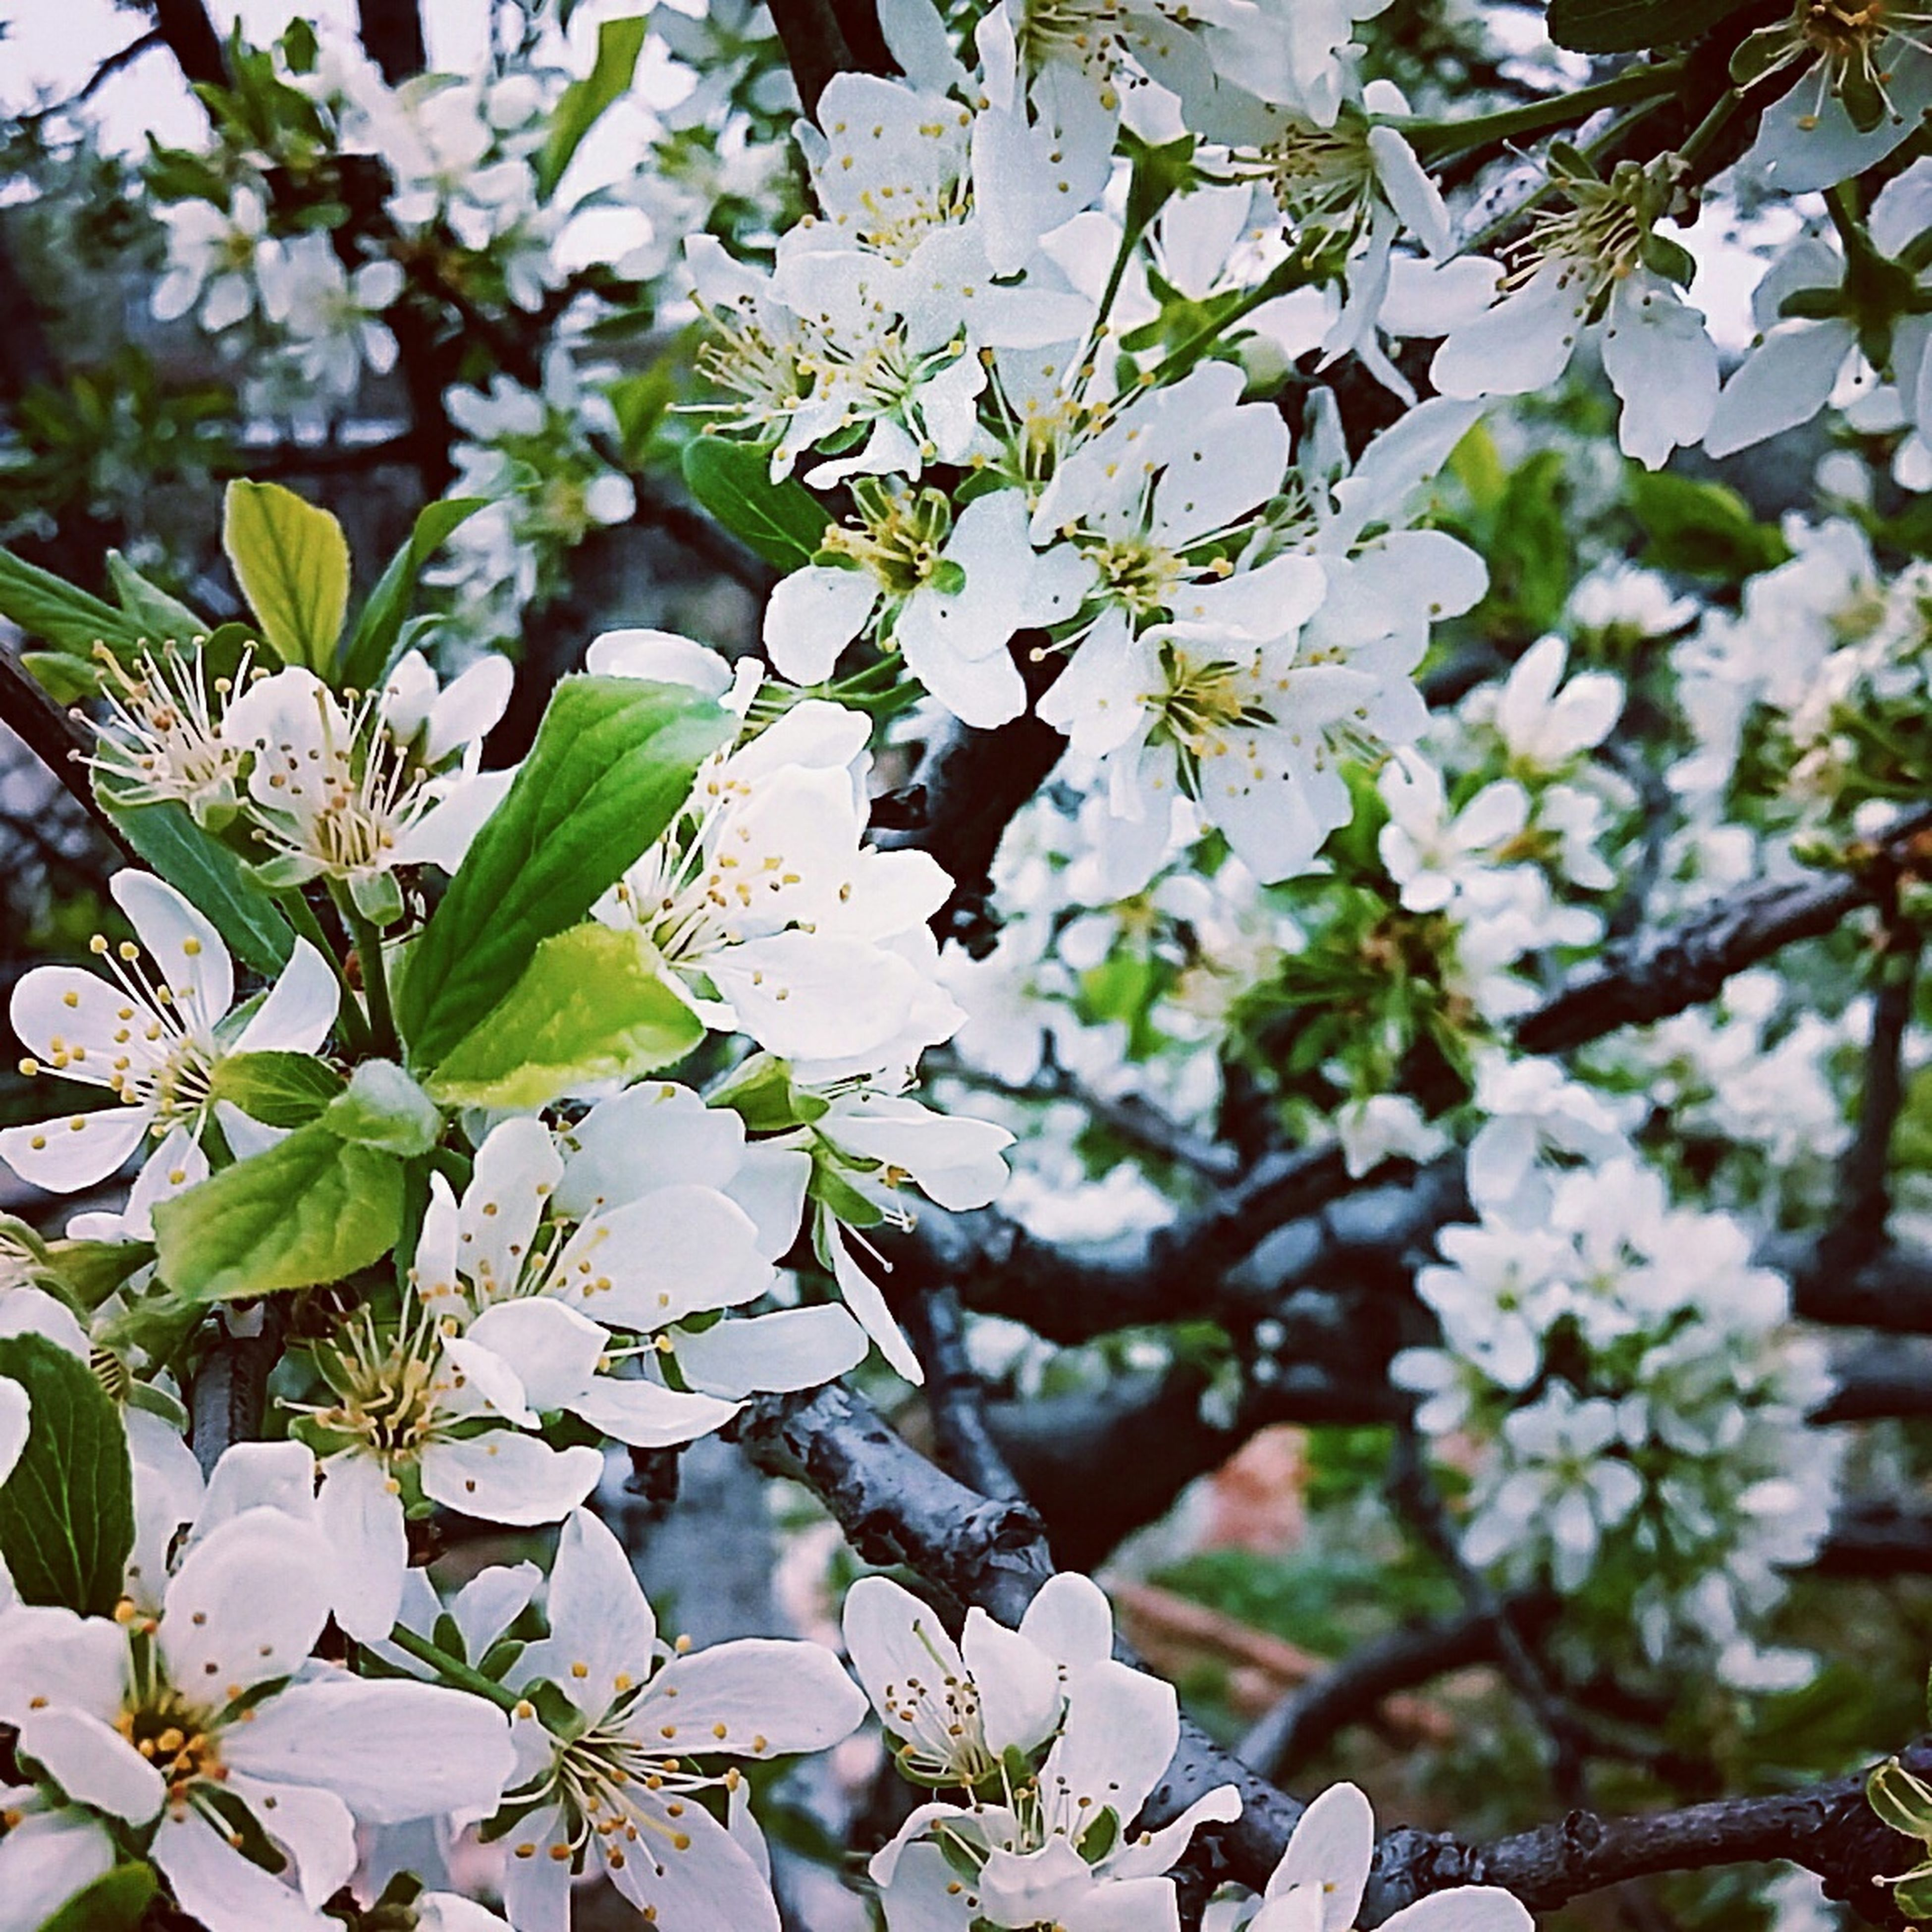 branch, growth, leaf, tree, nature, white color, beauty in nature, focus on foreground, flower, plant, close-up, low angle view, twig, day, freshness, outdoors, no people, green color, fragility, tranquility